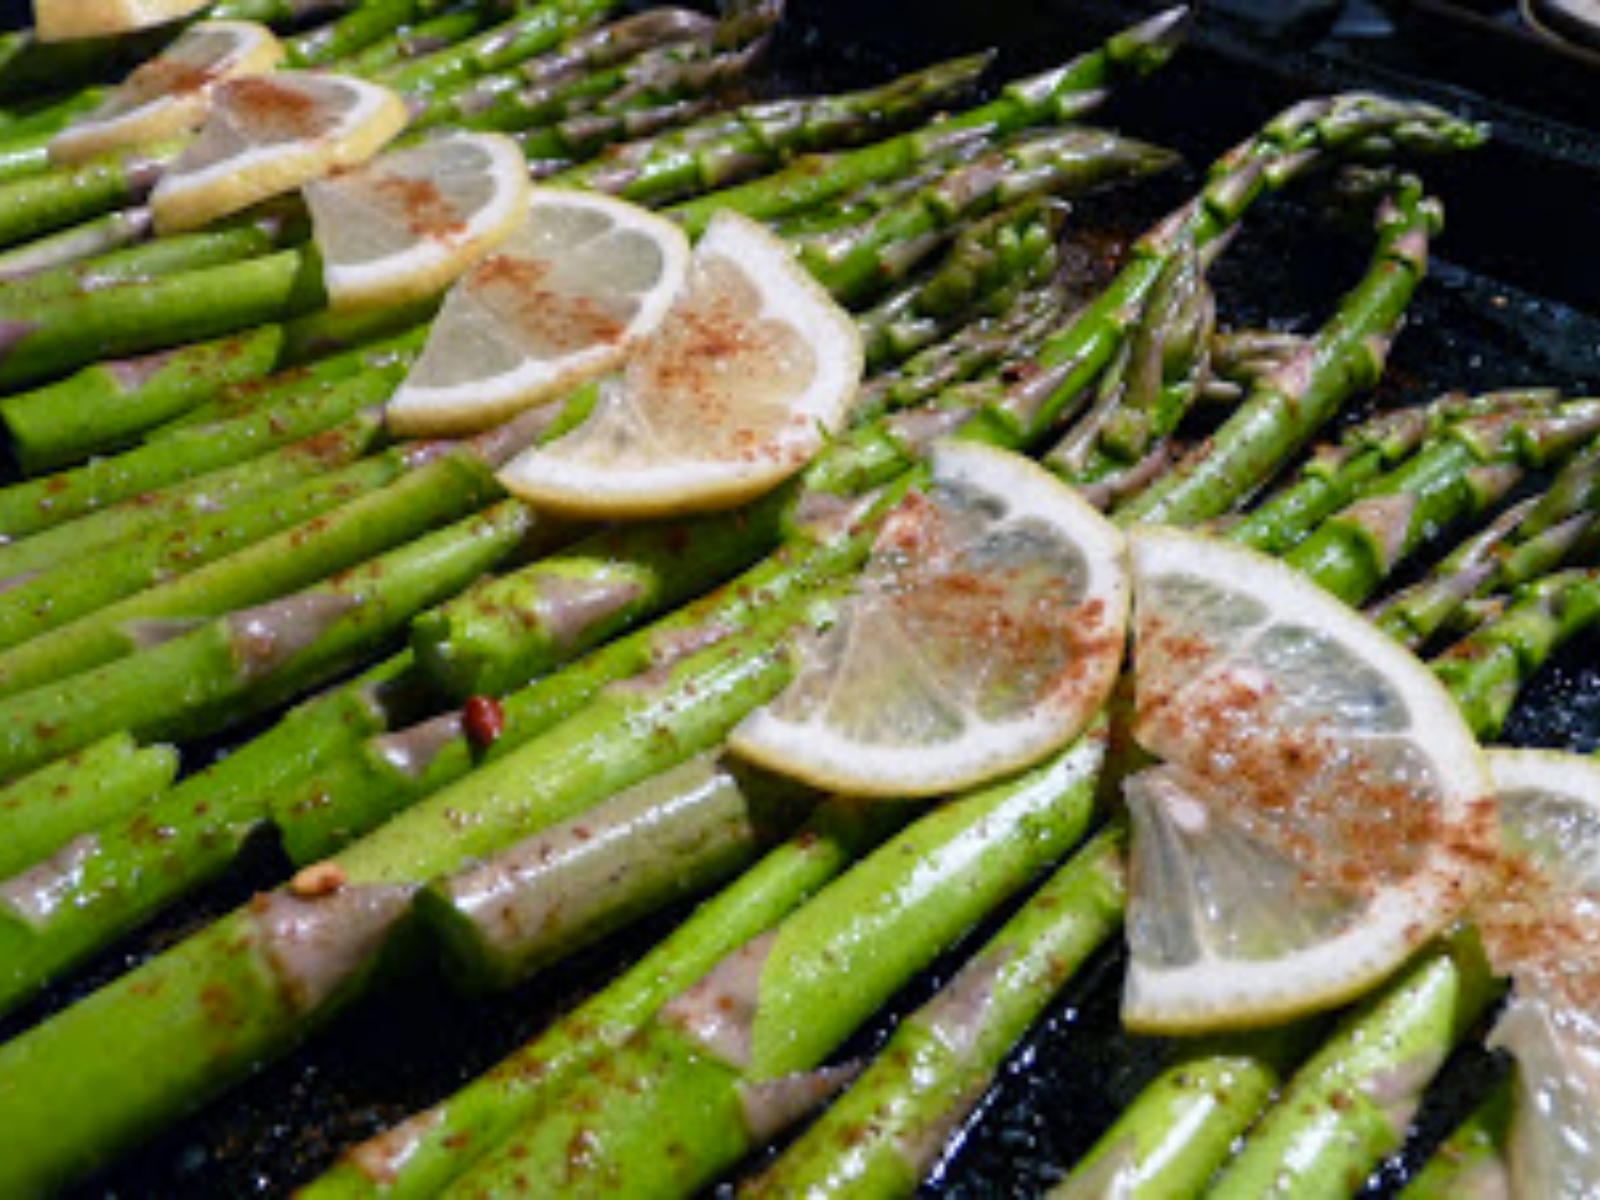 Wonderfully flavored vegan lemon and chili asparagus